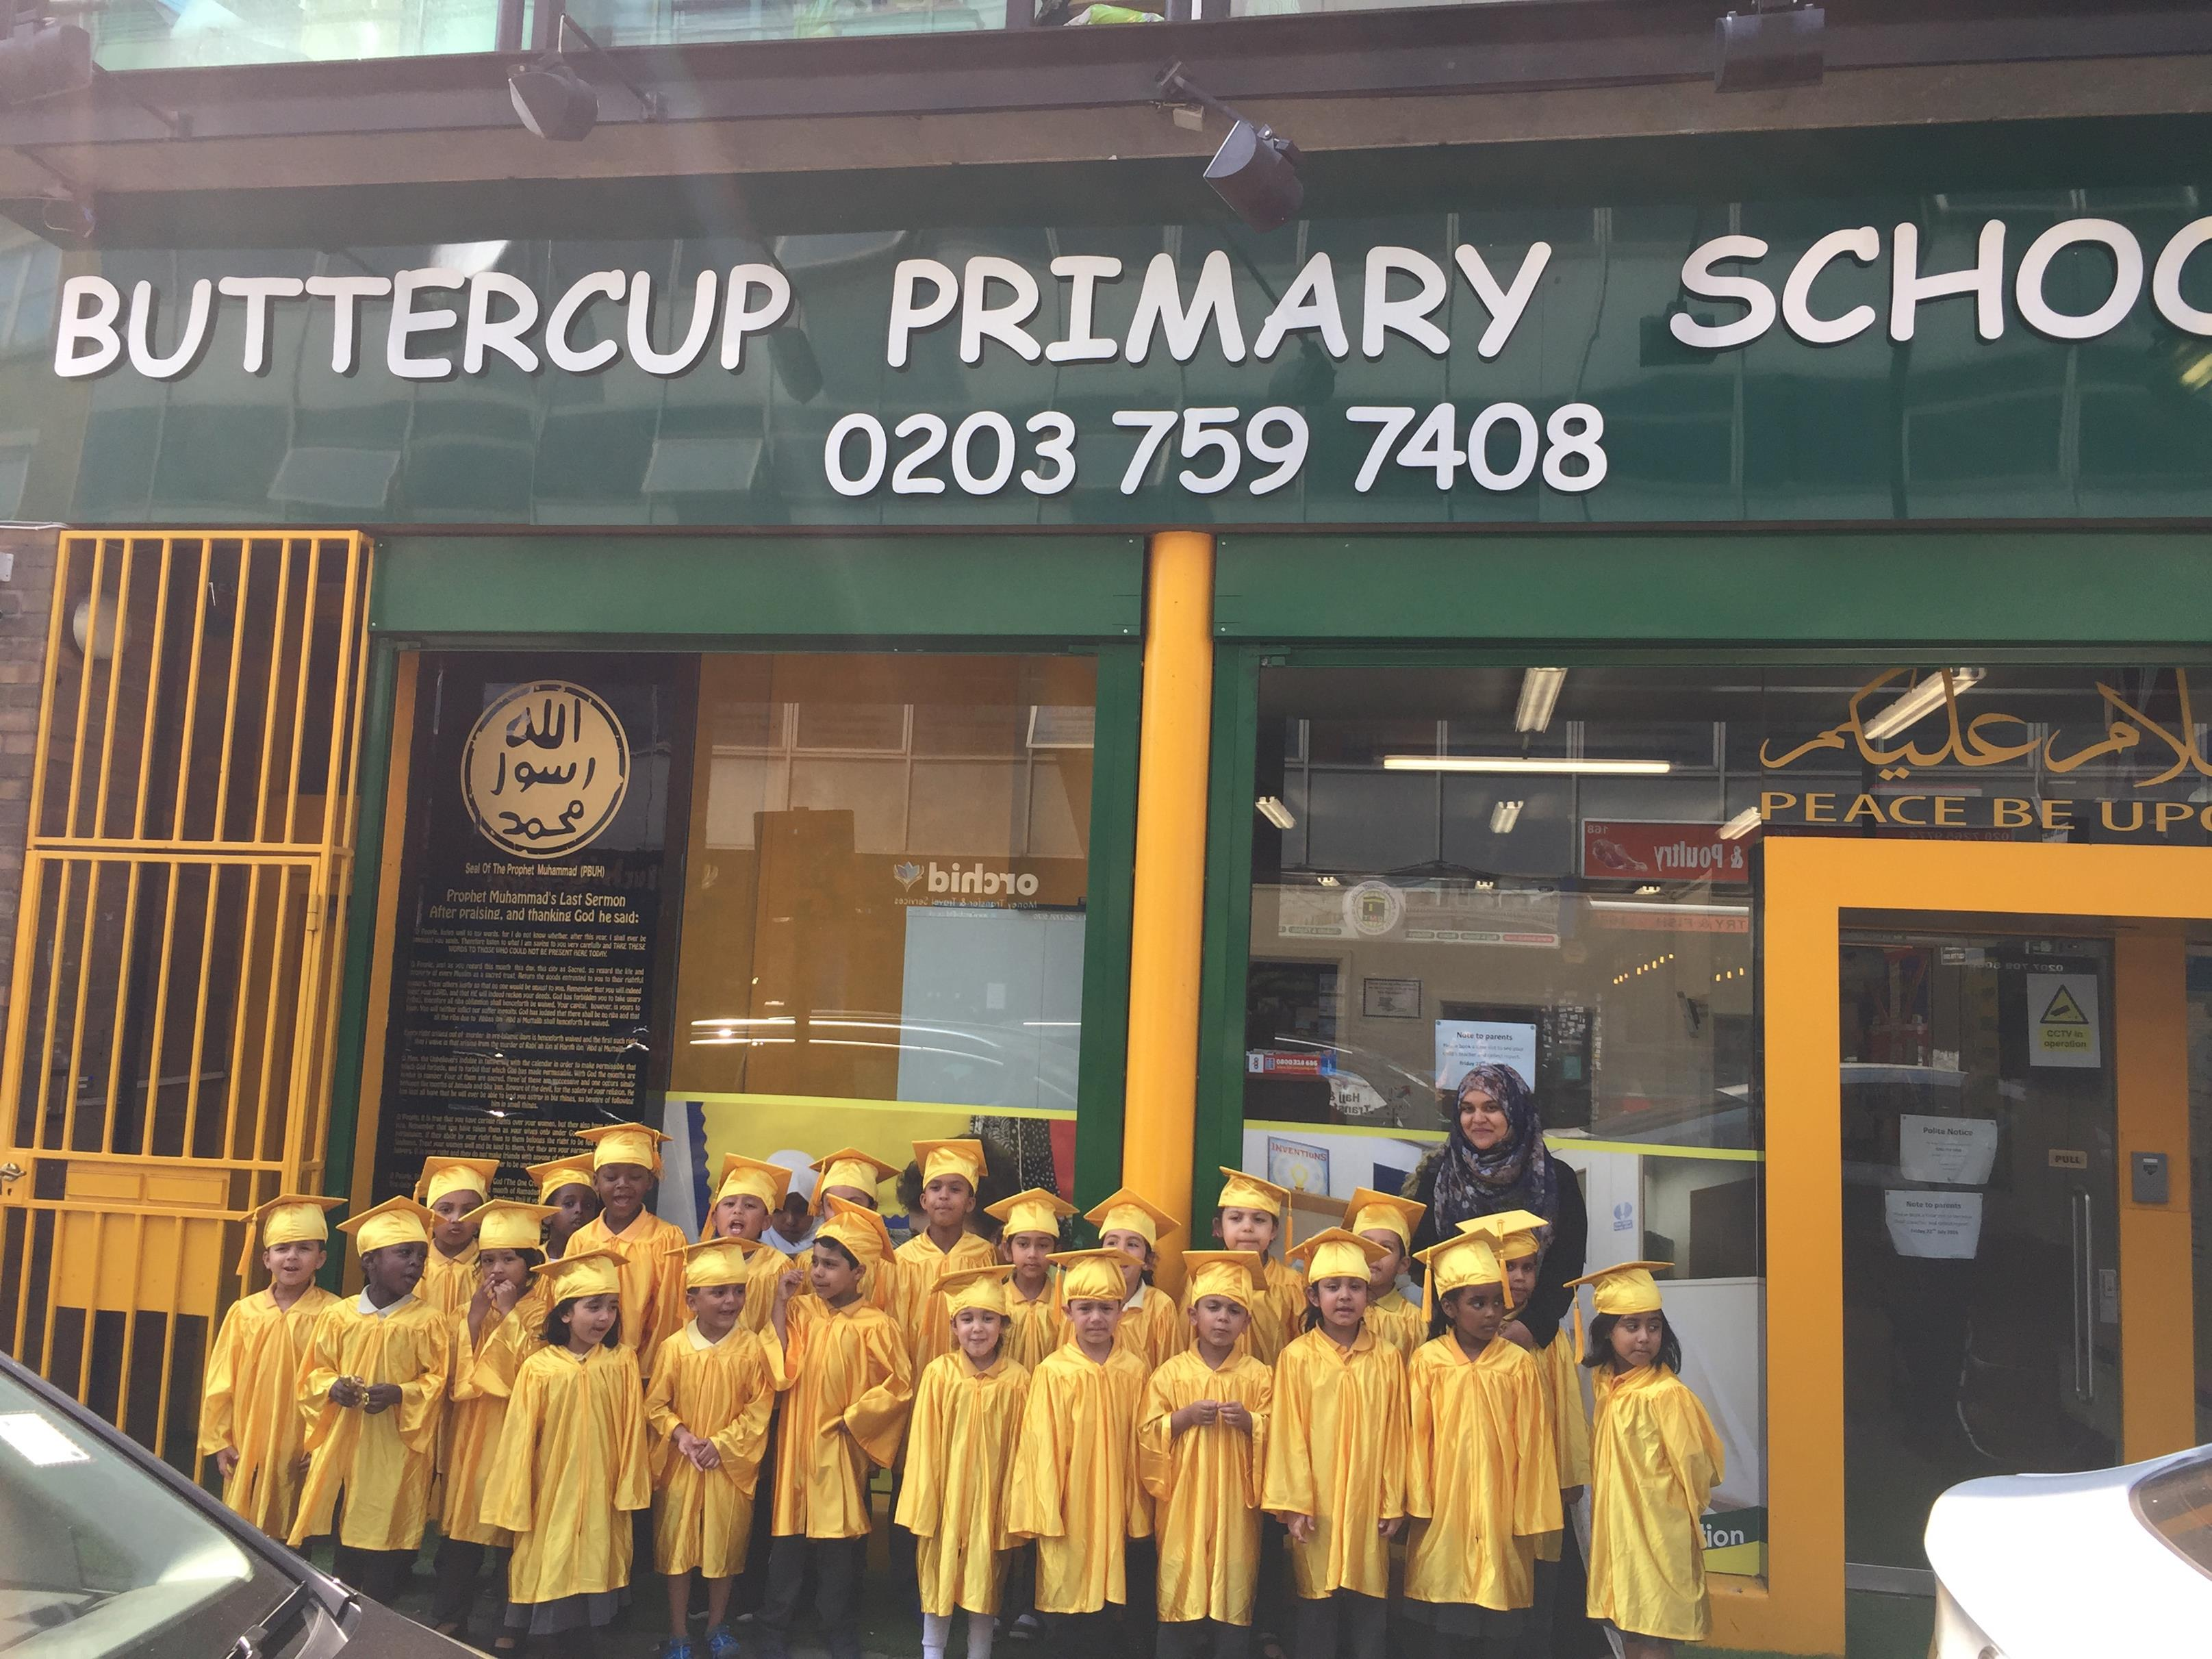 Graduation Ceremony Reception: Year 6 And Reception Class Graduation Ceremony 2016